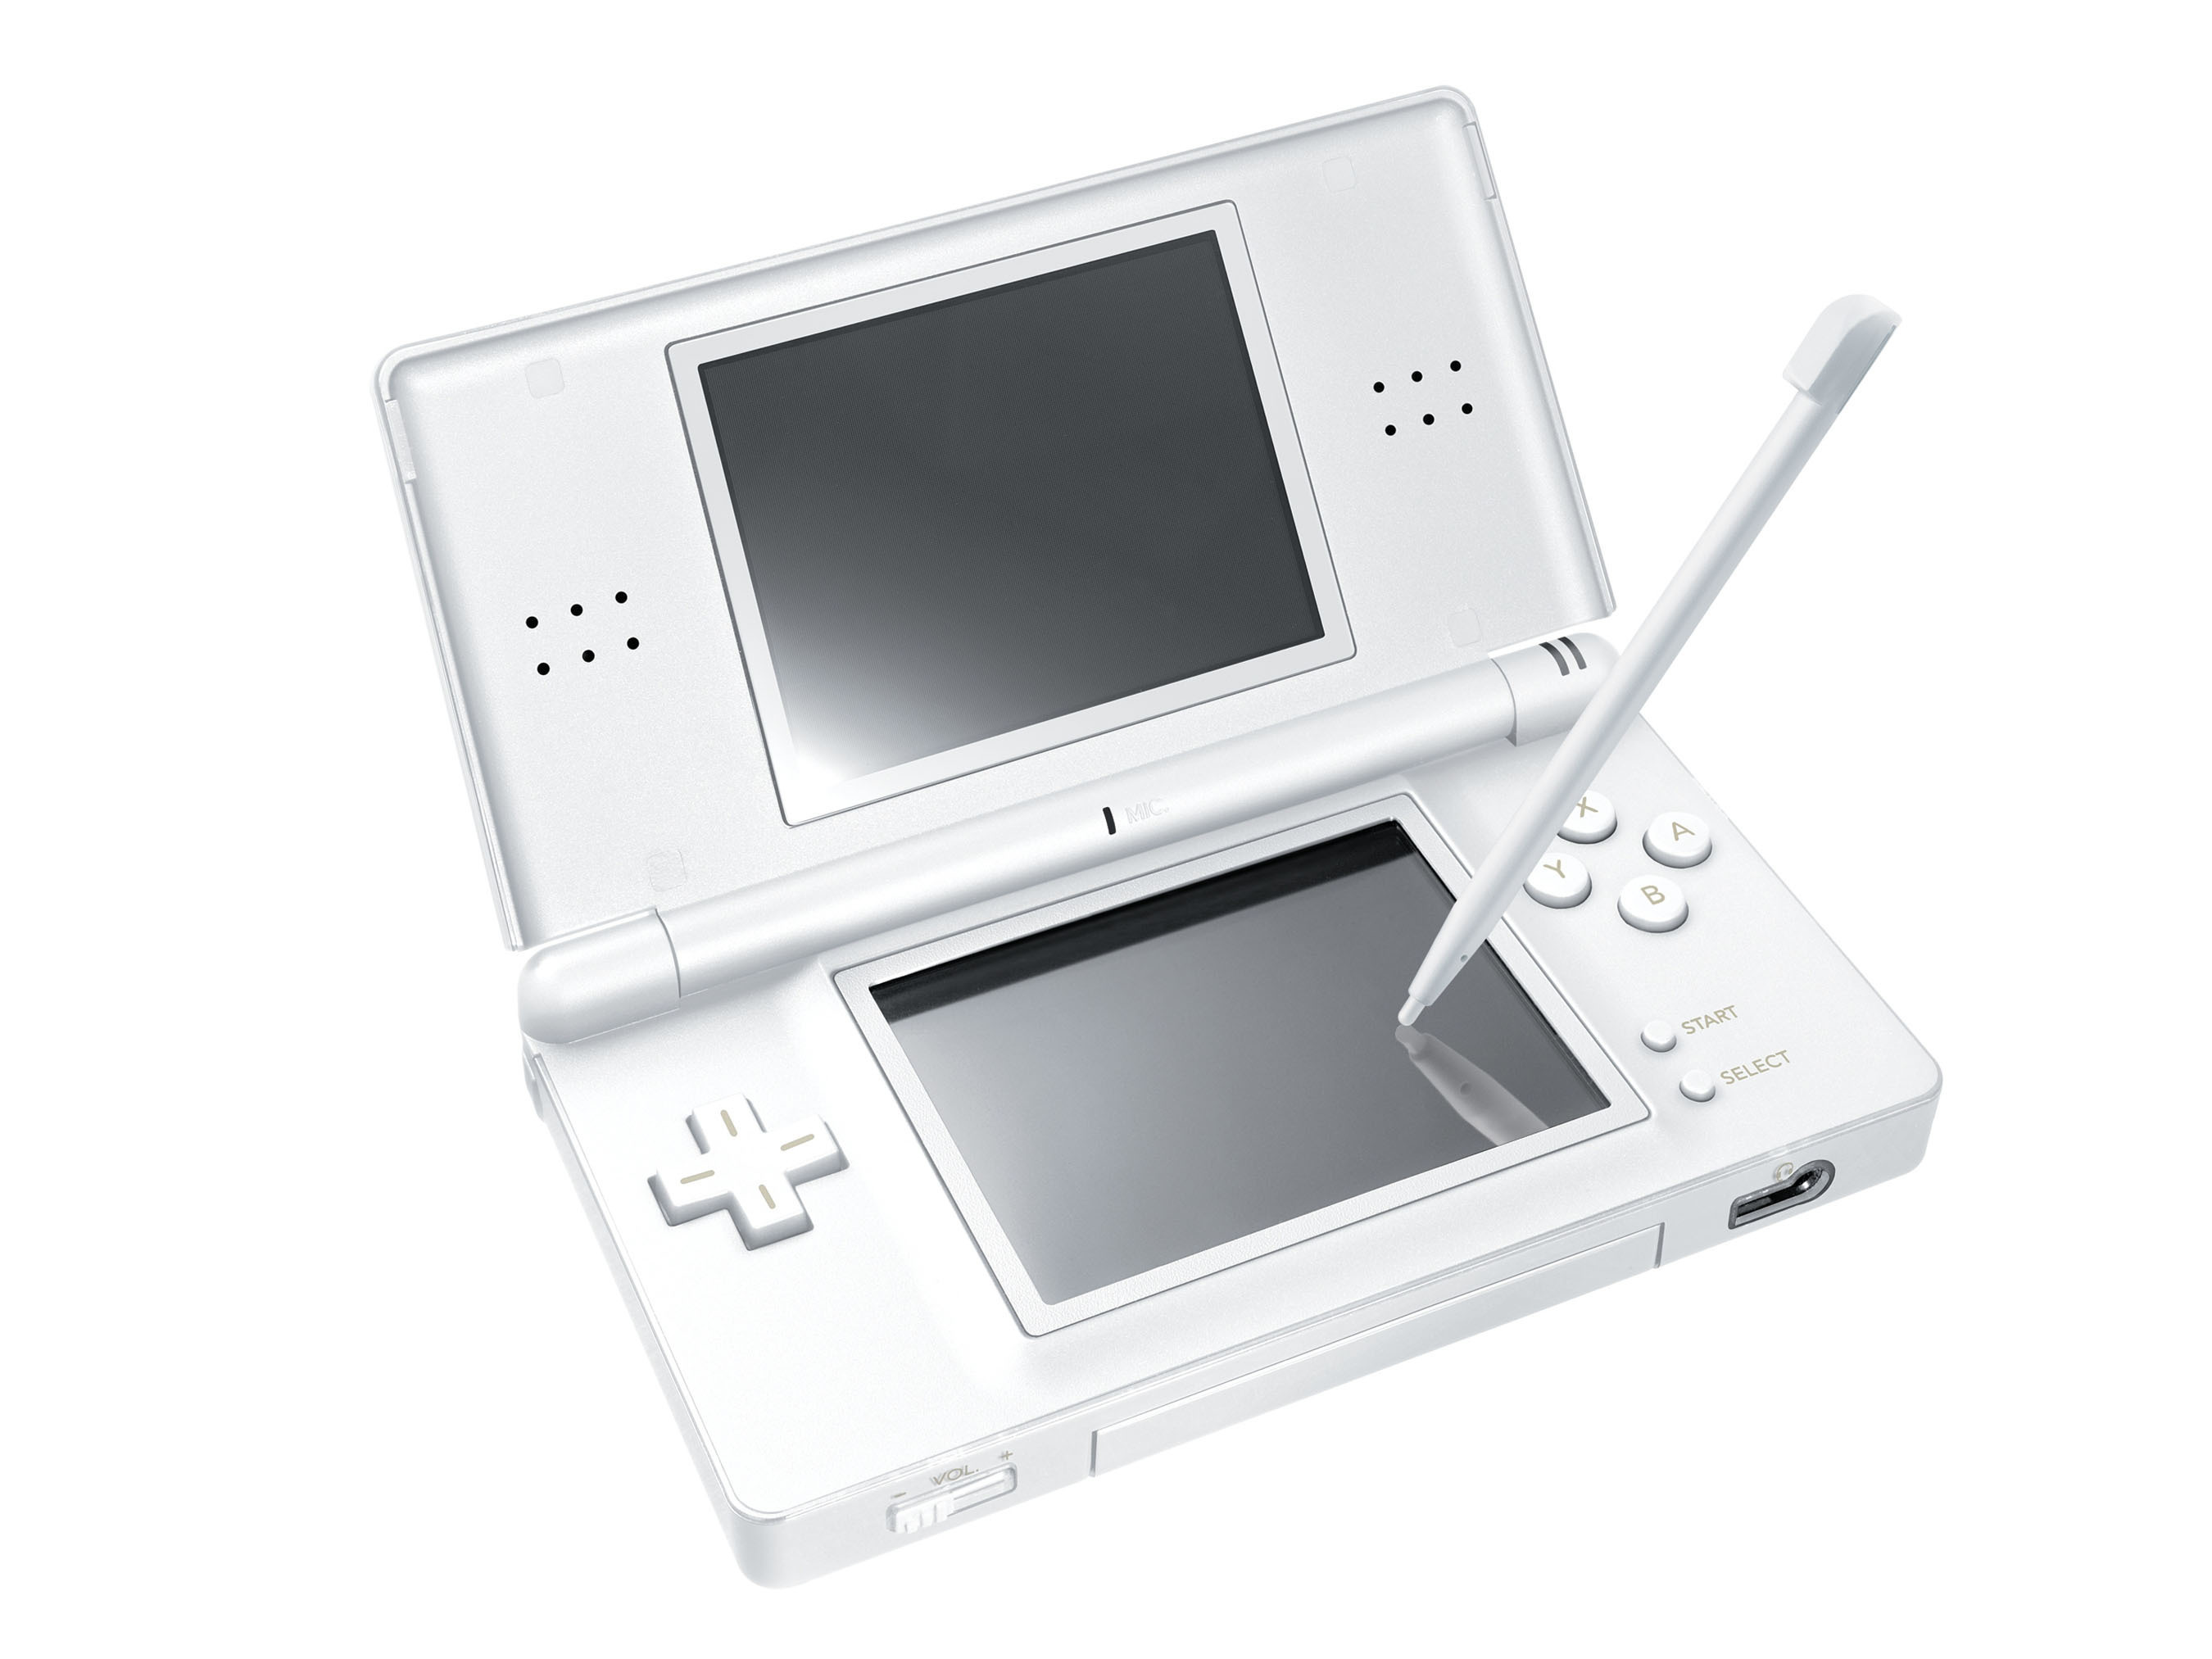 NINTENDO NINTENDO DS(TM) SYSTEMS